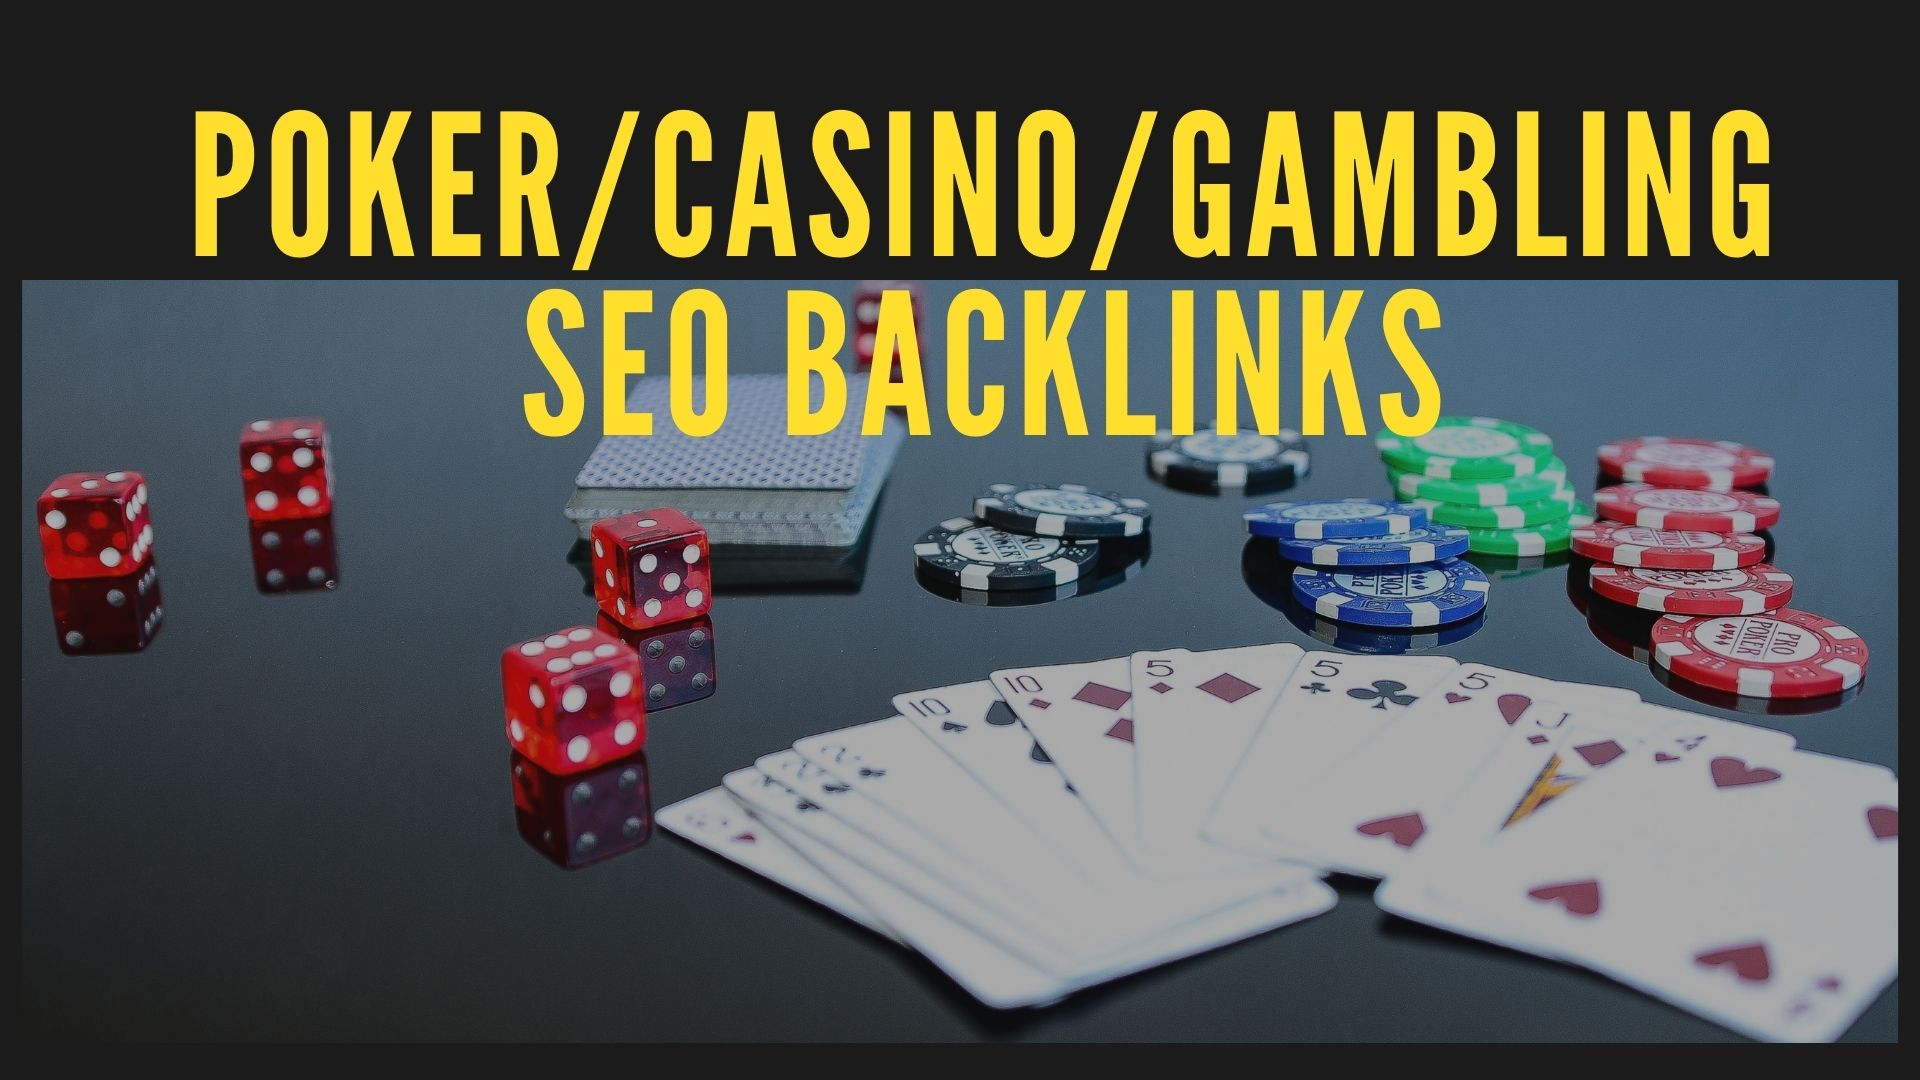 920+ Poker/Casino/gambling SEO Backlinks Pyramid for Fast Google Ranking